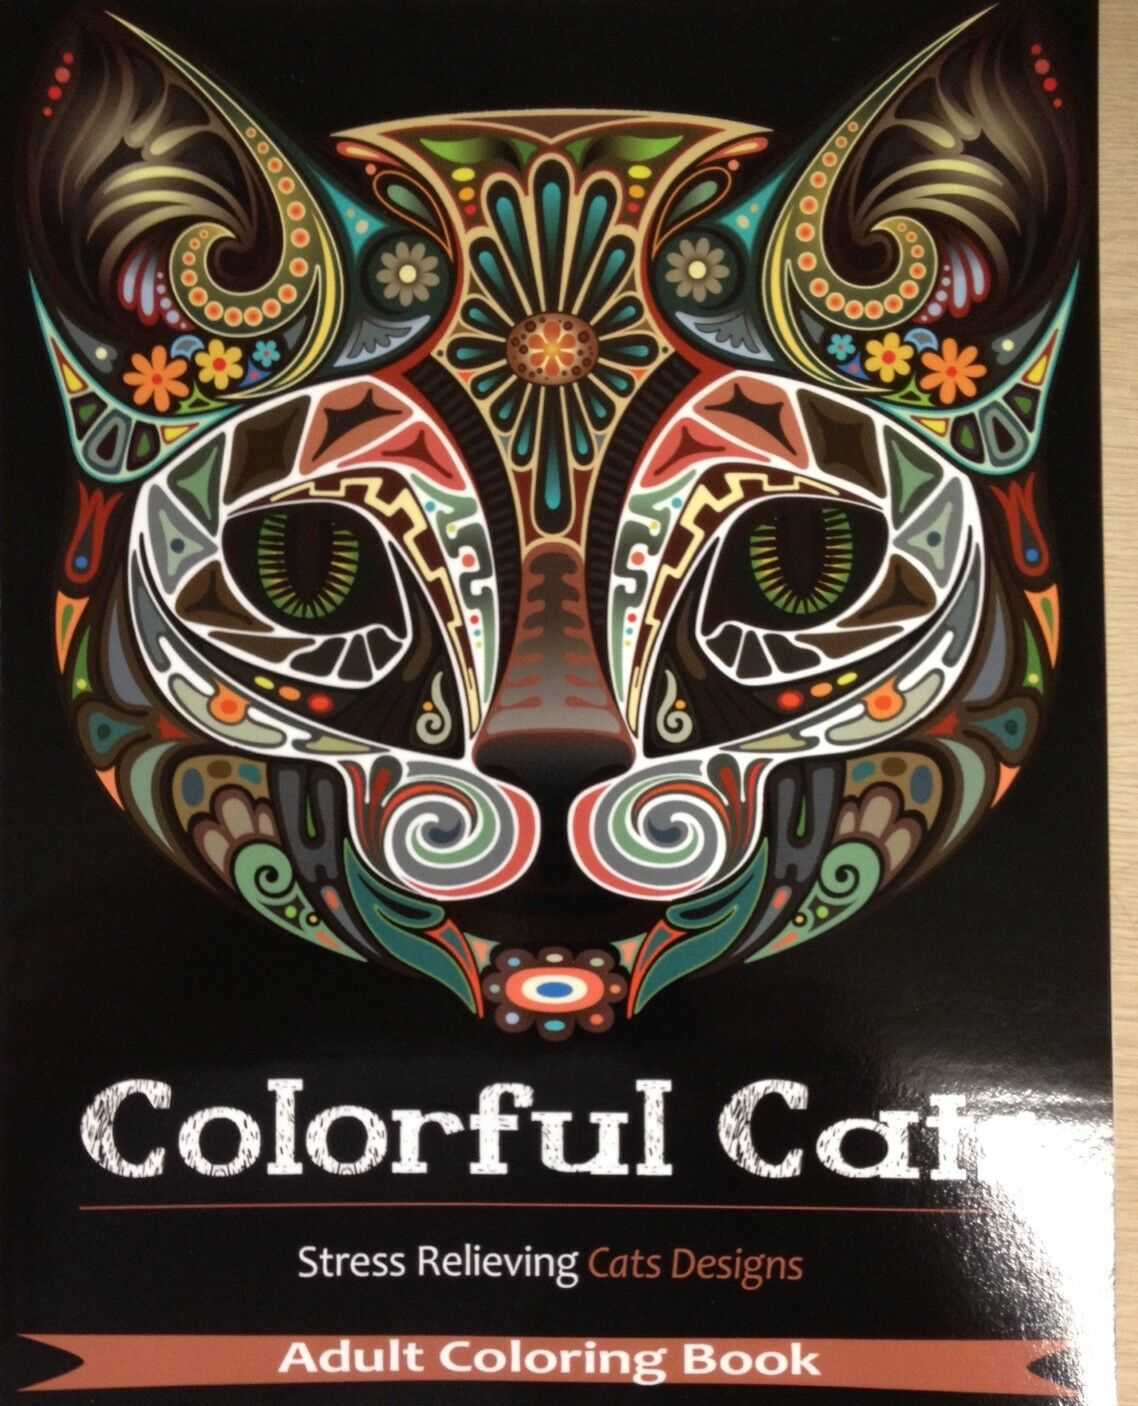 Купить Colorful Cats: Adult Coloring Book 30 Stress Relieving Cats Designs FUN Art Meow